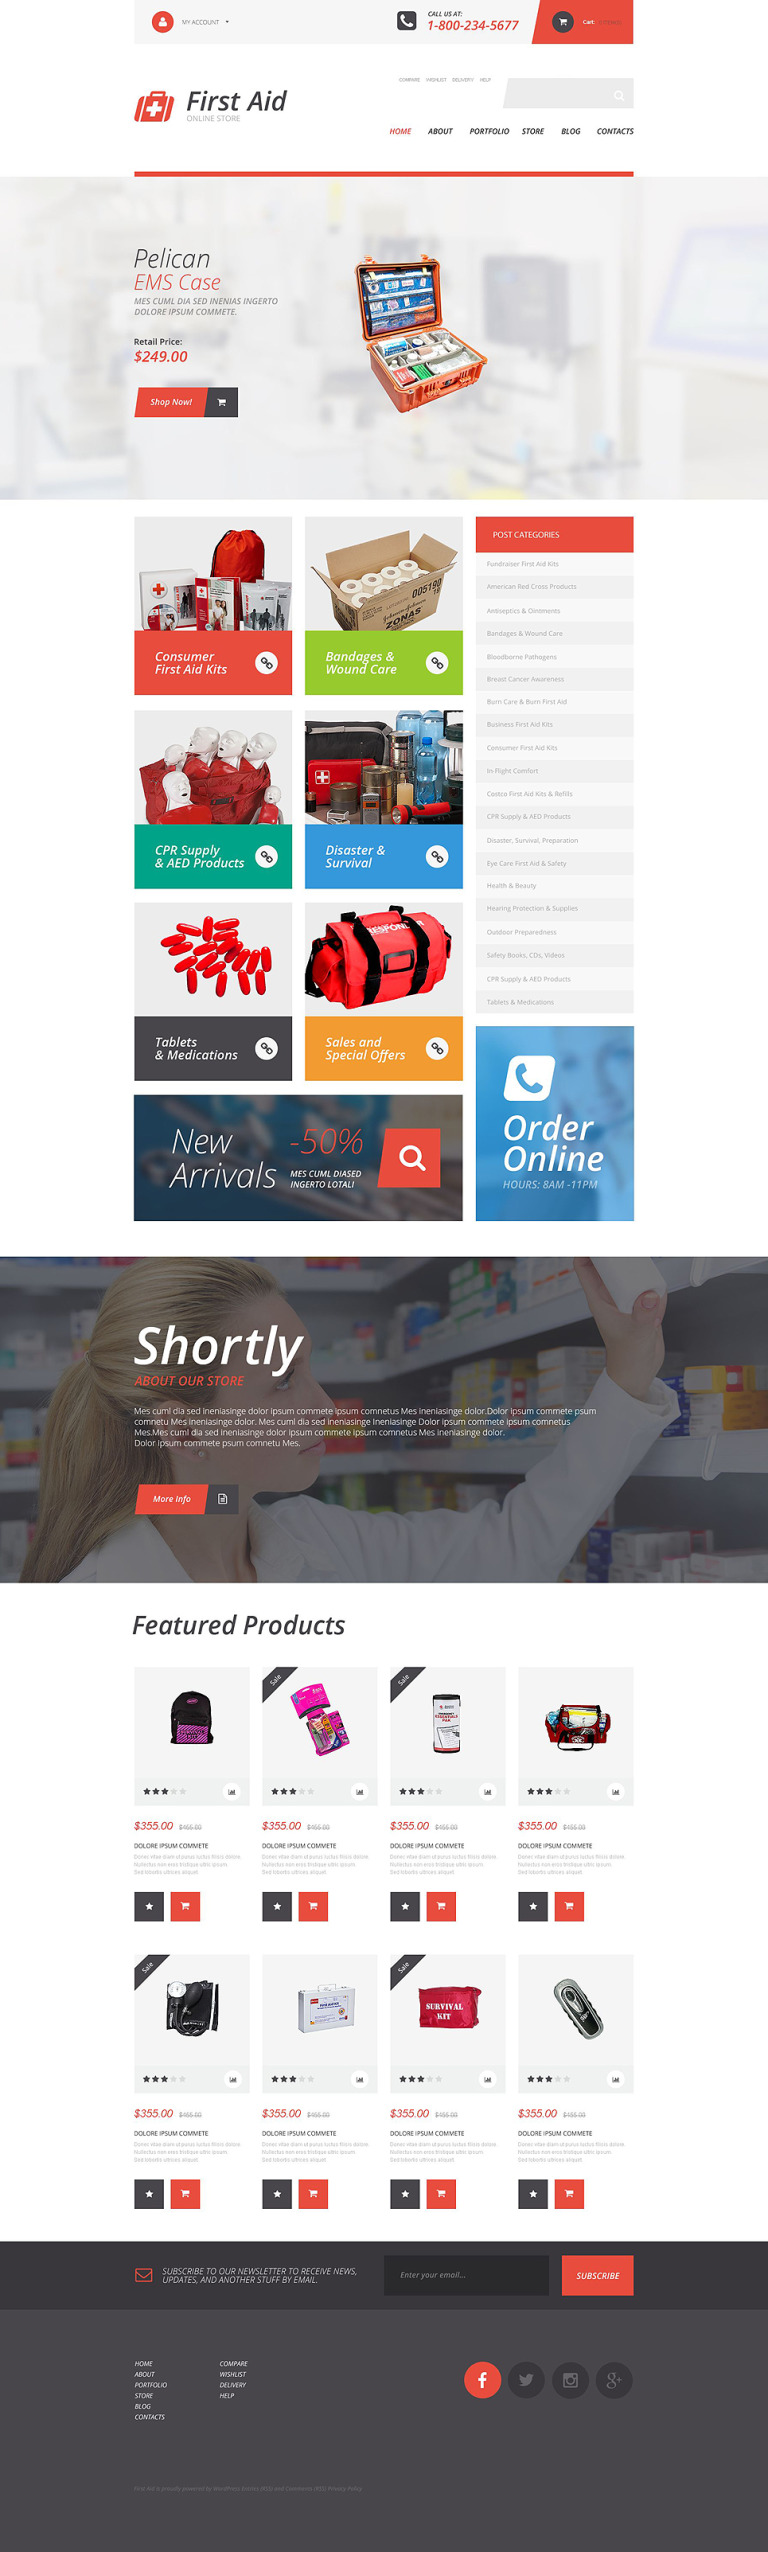 First Aid Supplies WooCommerce Theme New Screenshots BIG